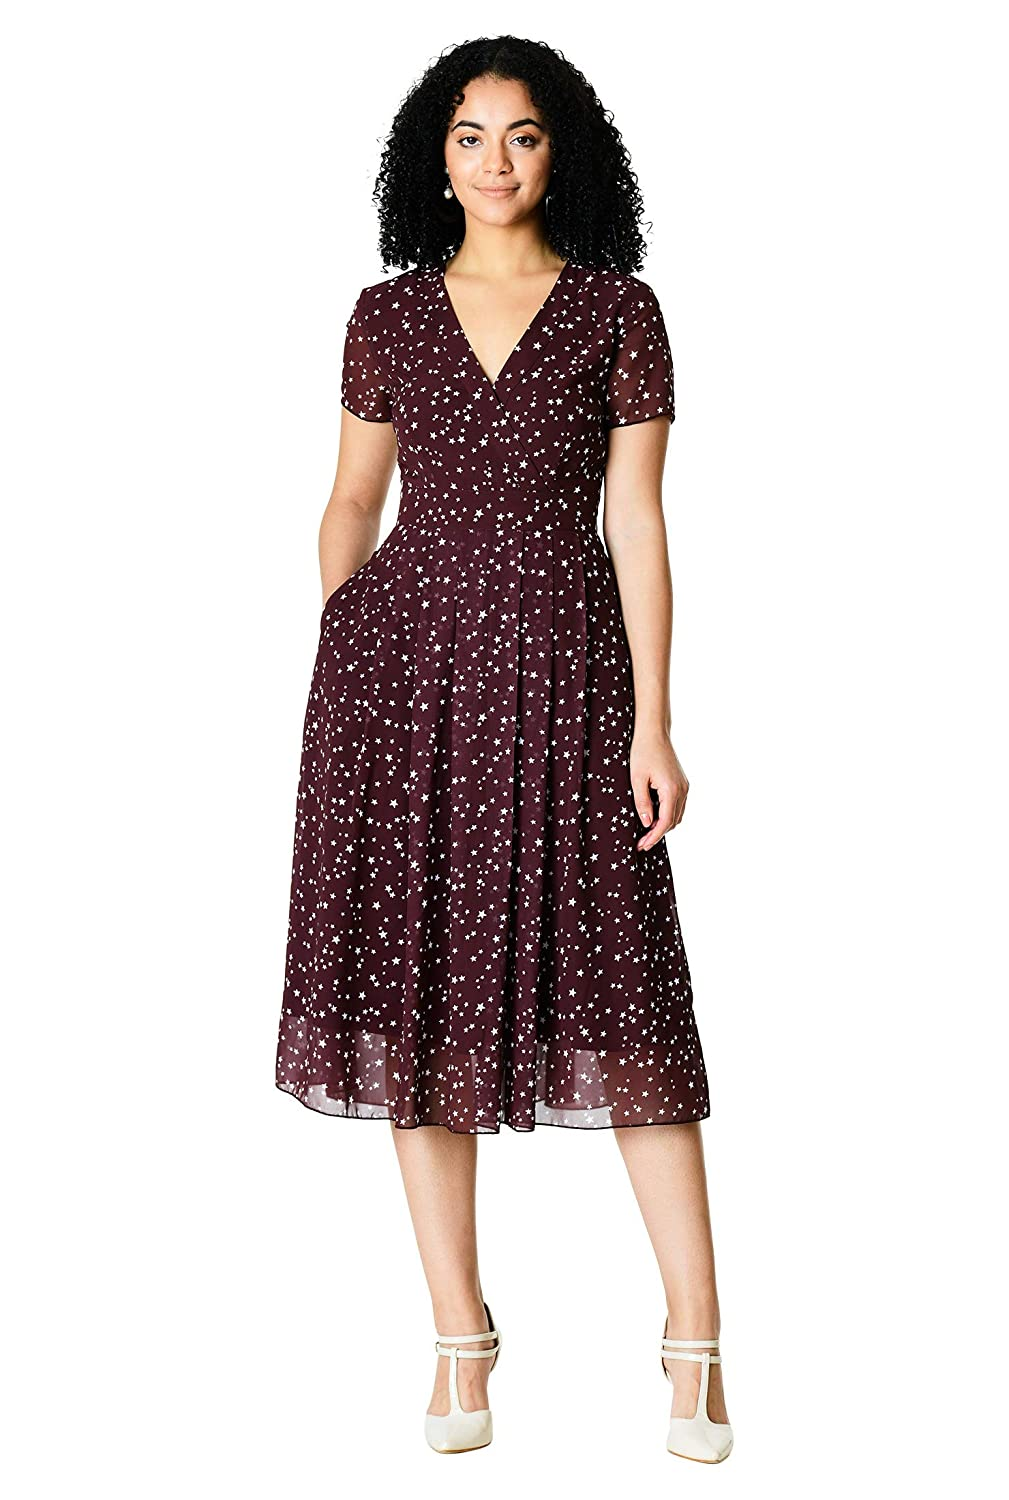 07c8393c974 Plus Size Cocktail Dresses Canada Online